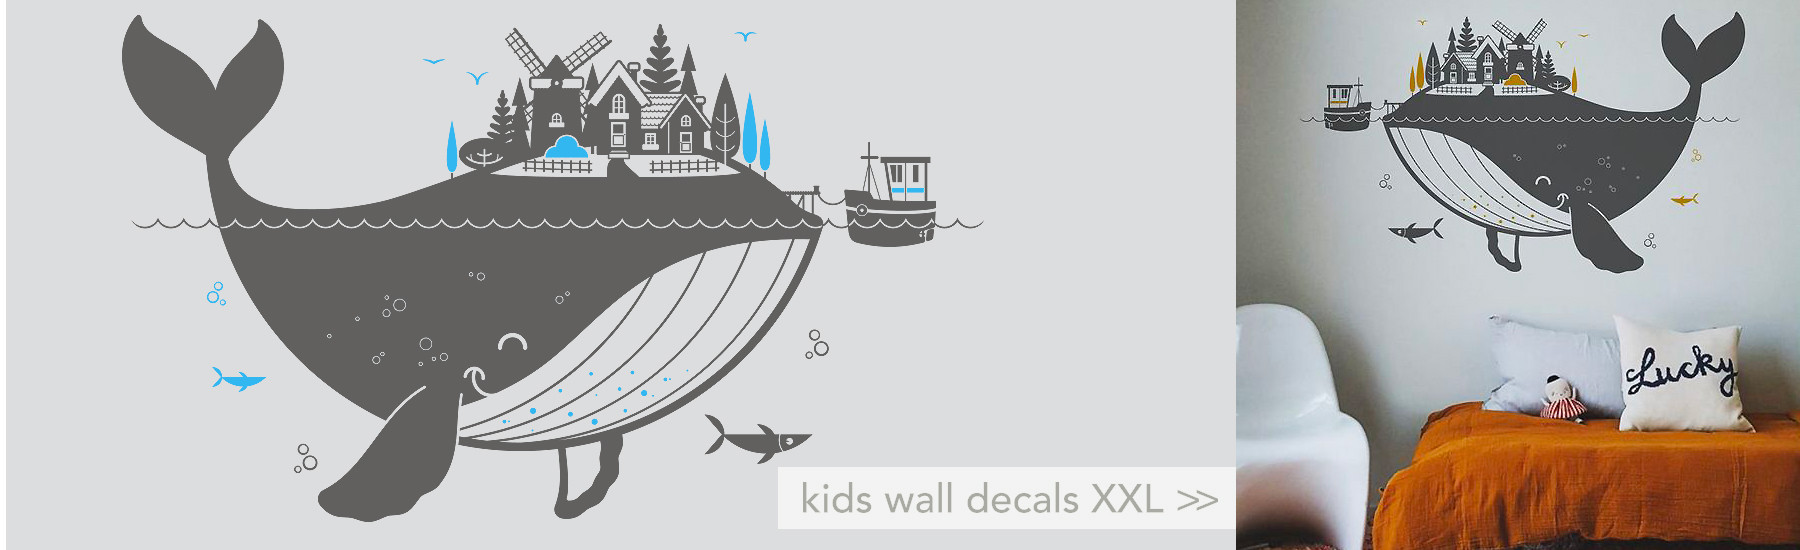 whale wall decals XXL for kids room or baby nursery